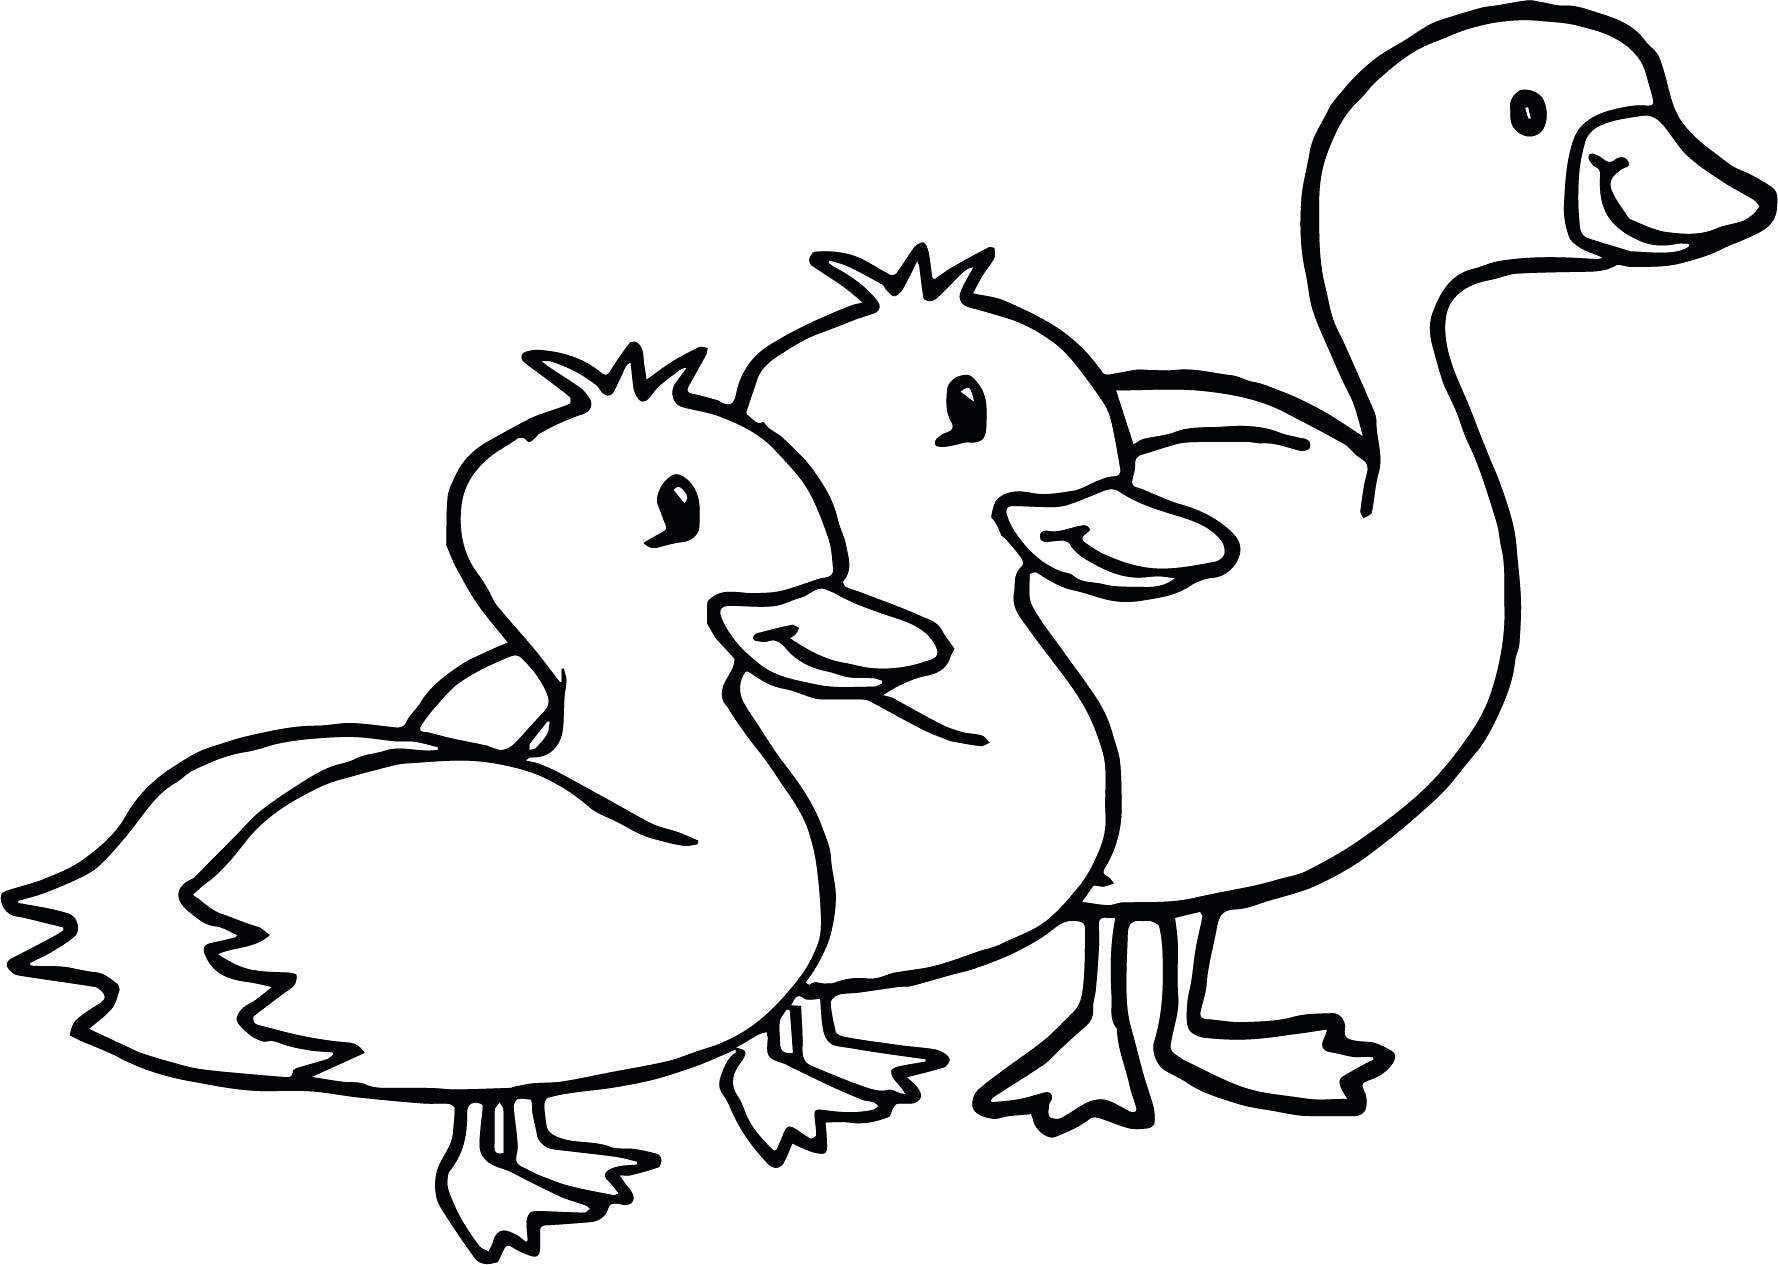 1778x1265 Flying Goose Coloring Page Gooses Birds Walking Pages For Kids